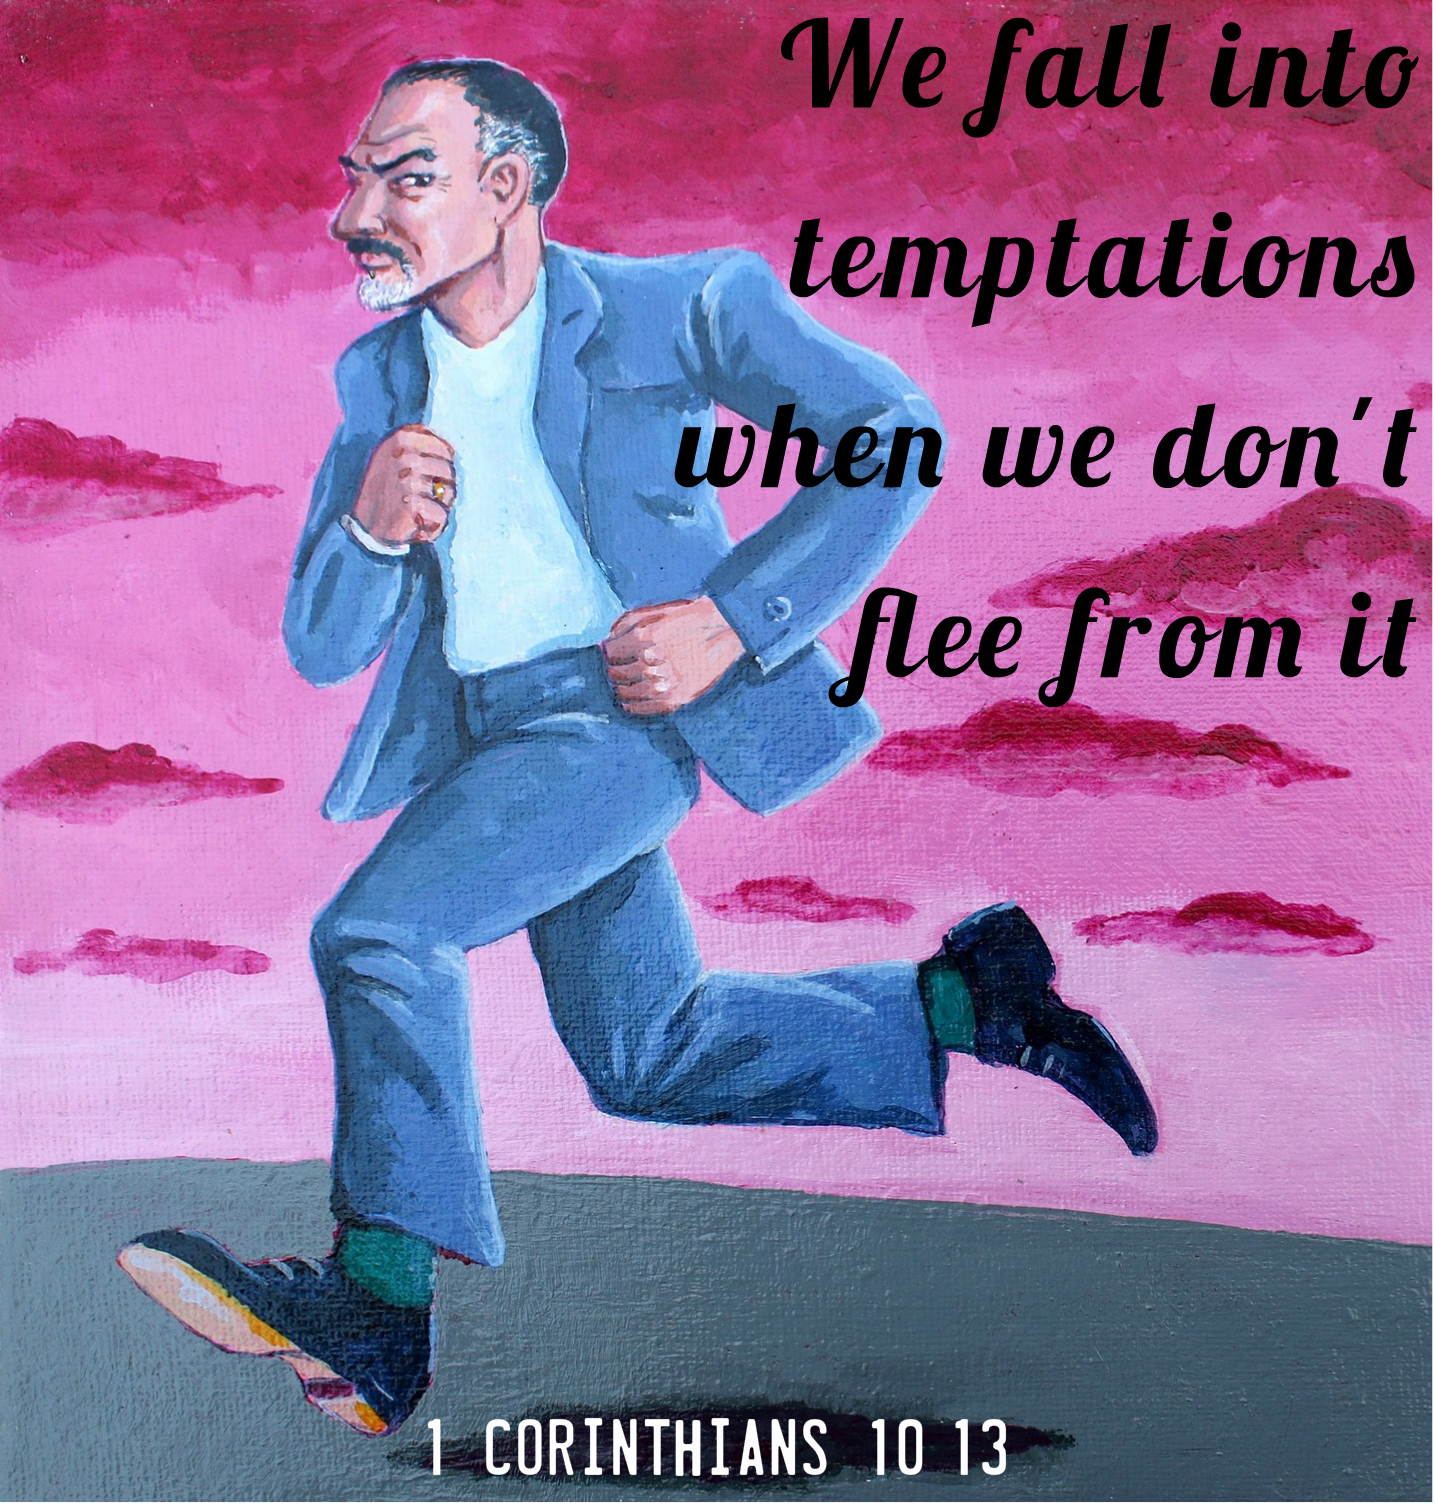 bible-verse-day-fleeing-temptation